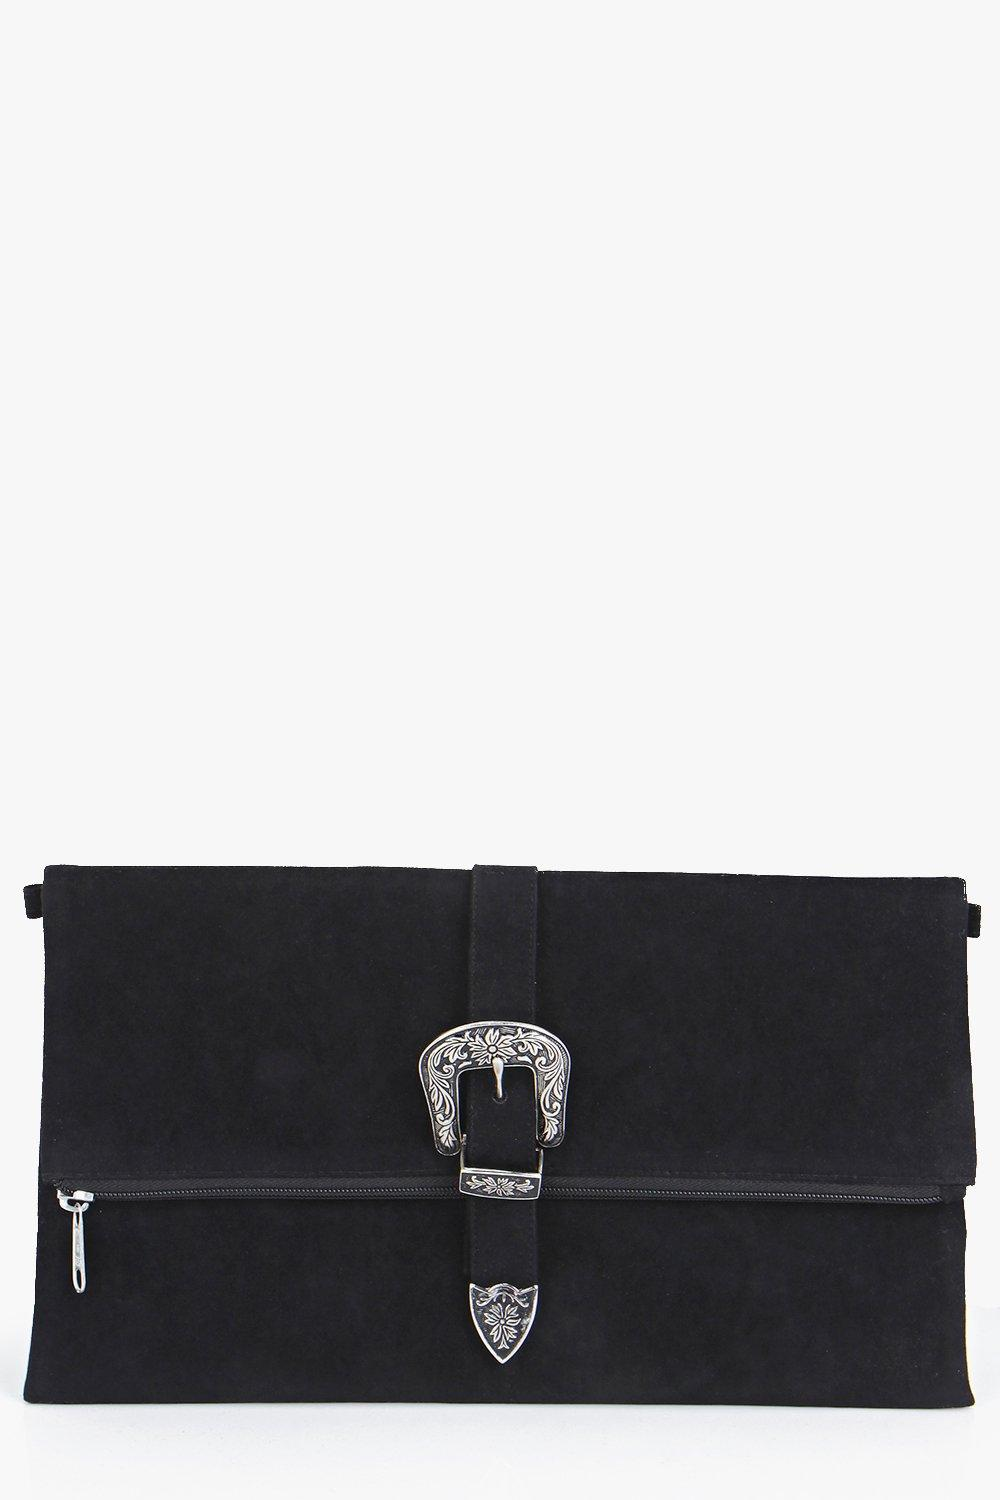 Iris Western Buckle Fold Over Clutch Bag